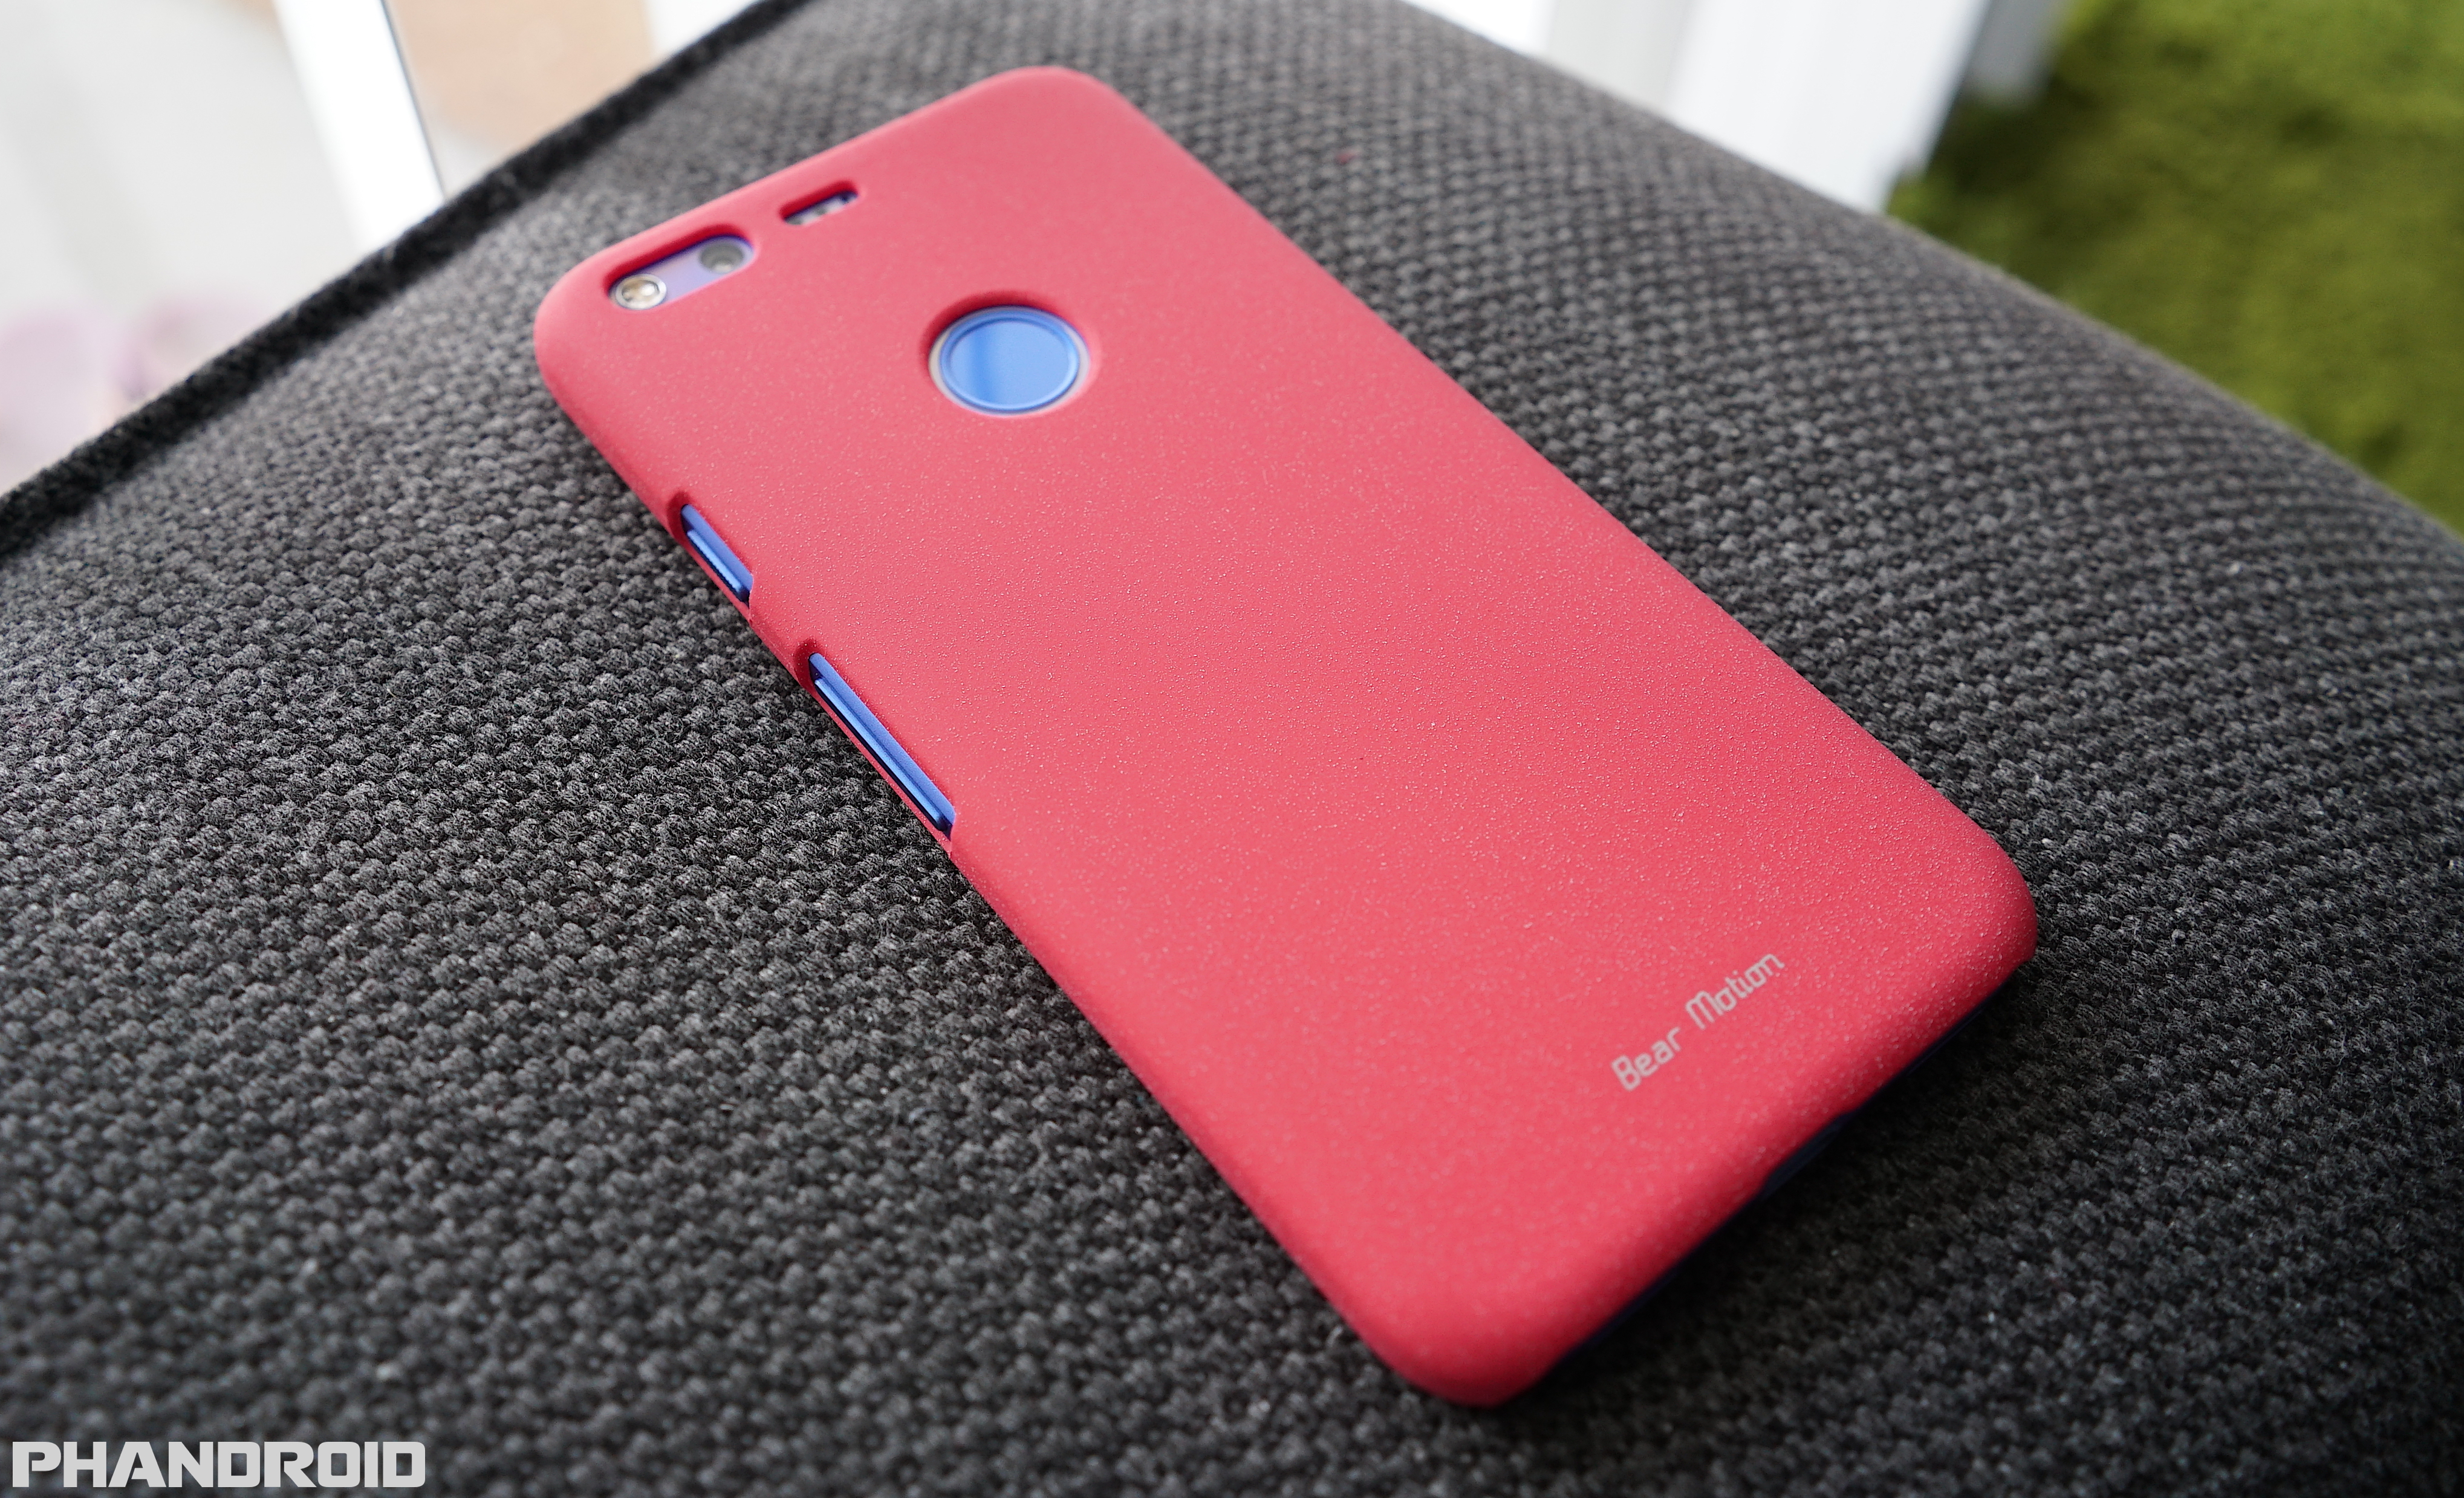 ultra thin sandstone cases provide superior grip for 8